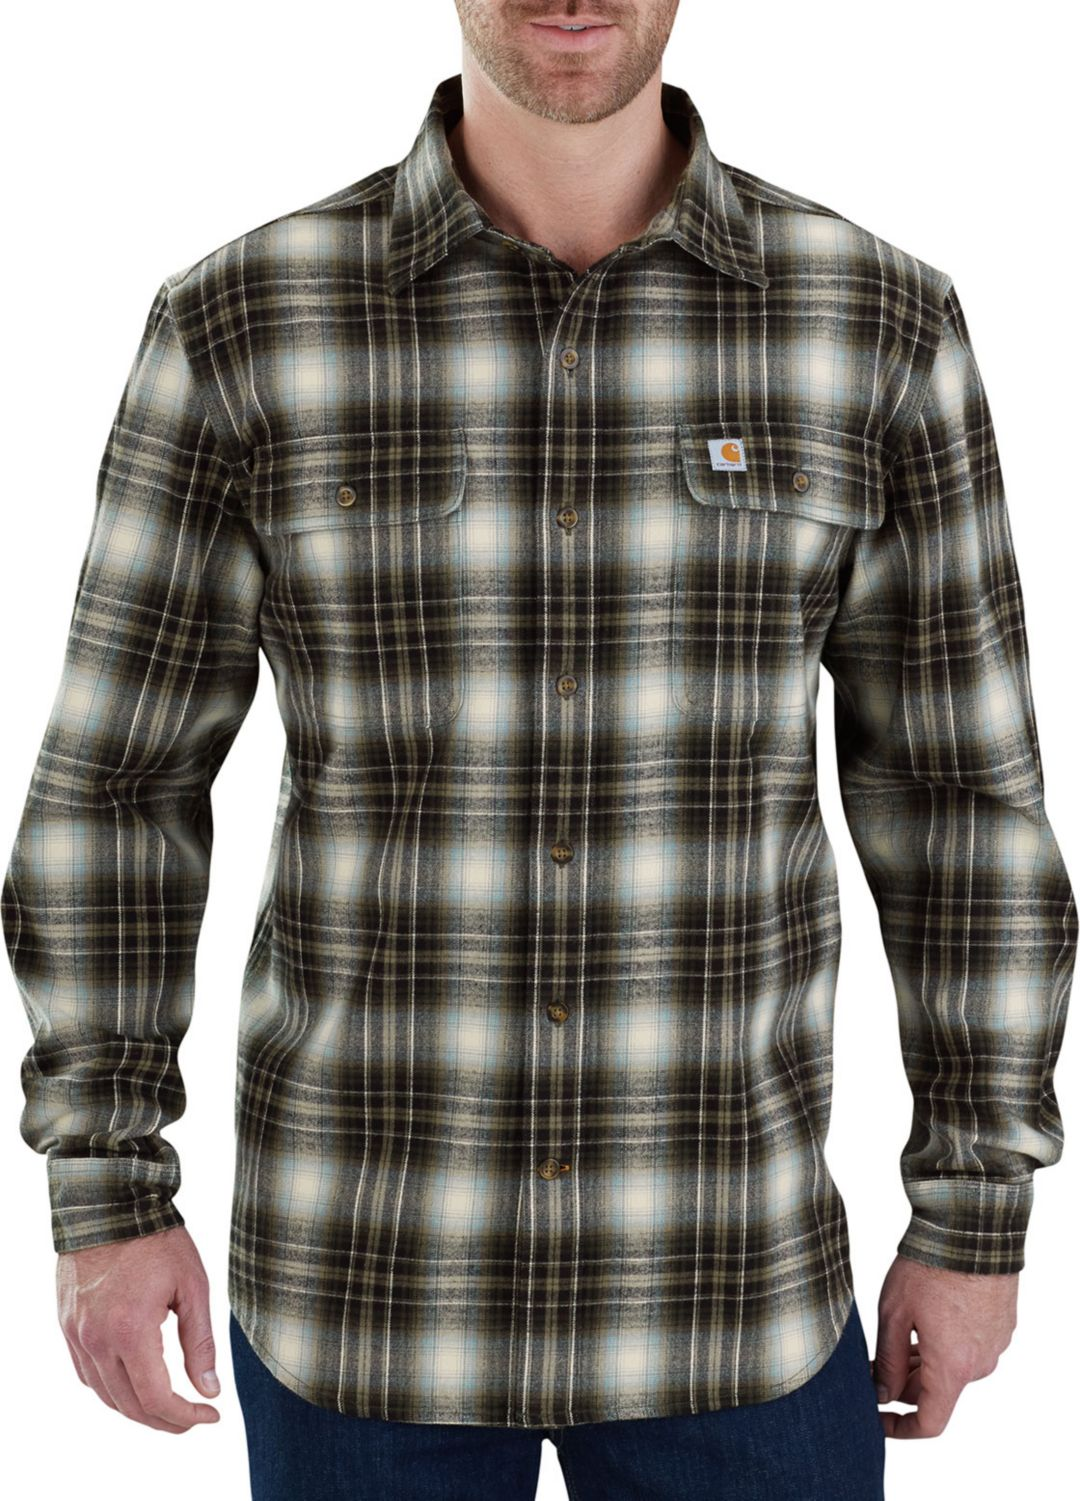 promo codes where to buy genuine shoes Carhartt Men's Hubbard Plaid Long Sleeve Button Down Shirt